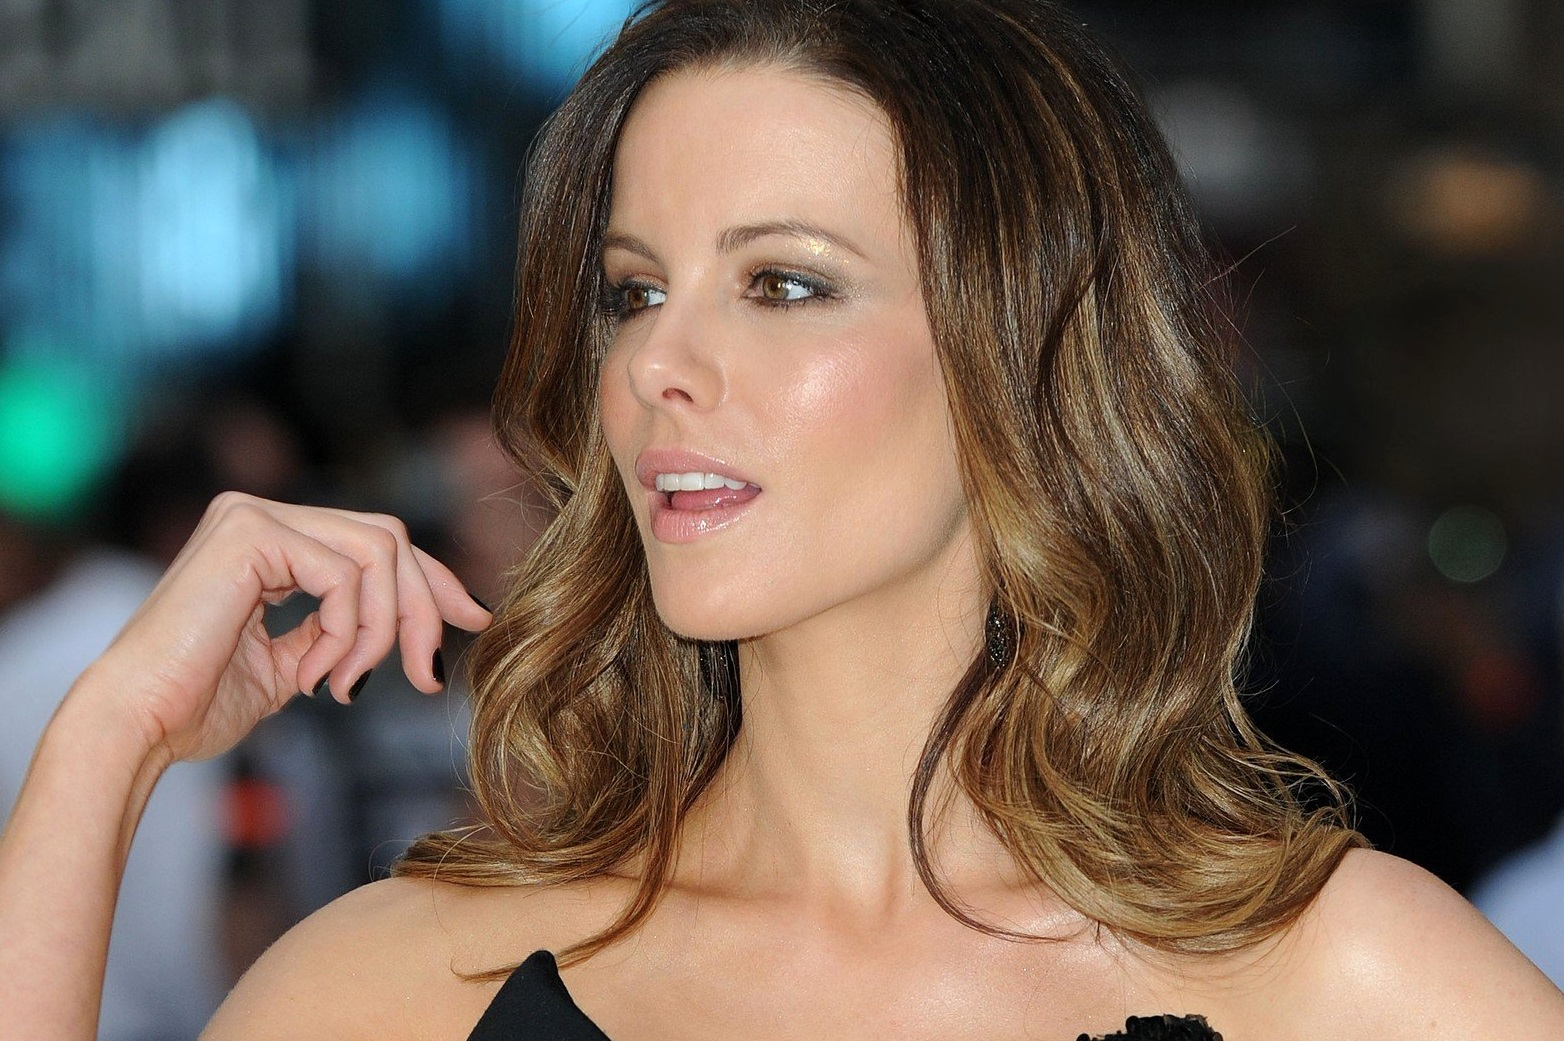 Picture Shows: Kate Beckinsale attending the UK premiere of 'Total Recall' at the Vue, Leicester Square, London, on Thursday August 16, 2012., Image: 139898459, License: Rights-managed, Restrictions: , Model Release: no, Credit line: Profimedia, MirrorPix